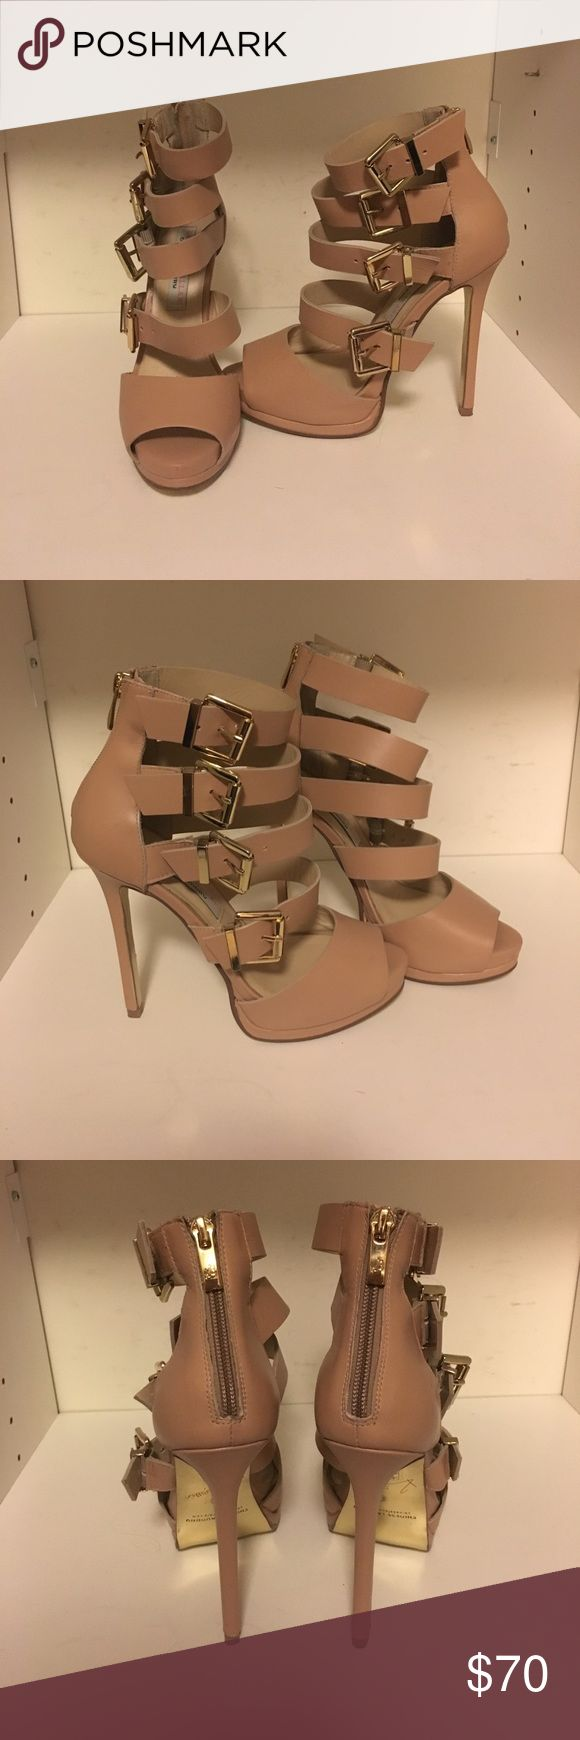 Kristin Cavallari Chinese Laundry strappy heels Kristin Cavallari Chinese Laundry strappy heels, nude, size 6.5, worn once. Chinese Laundry Shoes Heels